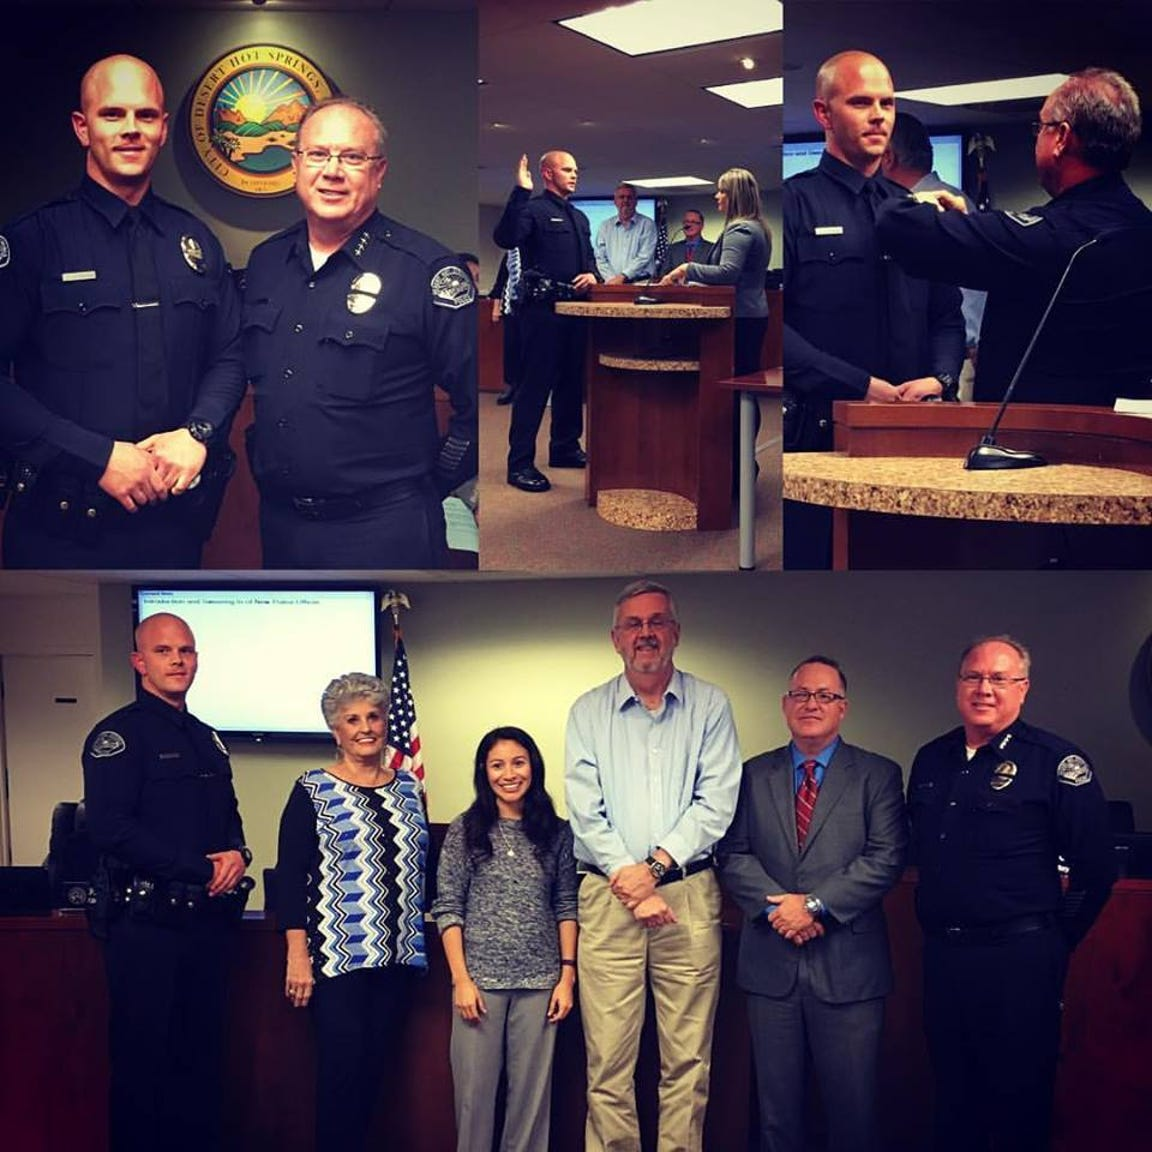 Travis Chapman was sworn into the Desert Hot Springs Police Department on Dec. 5, 2016.